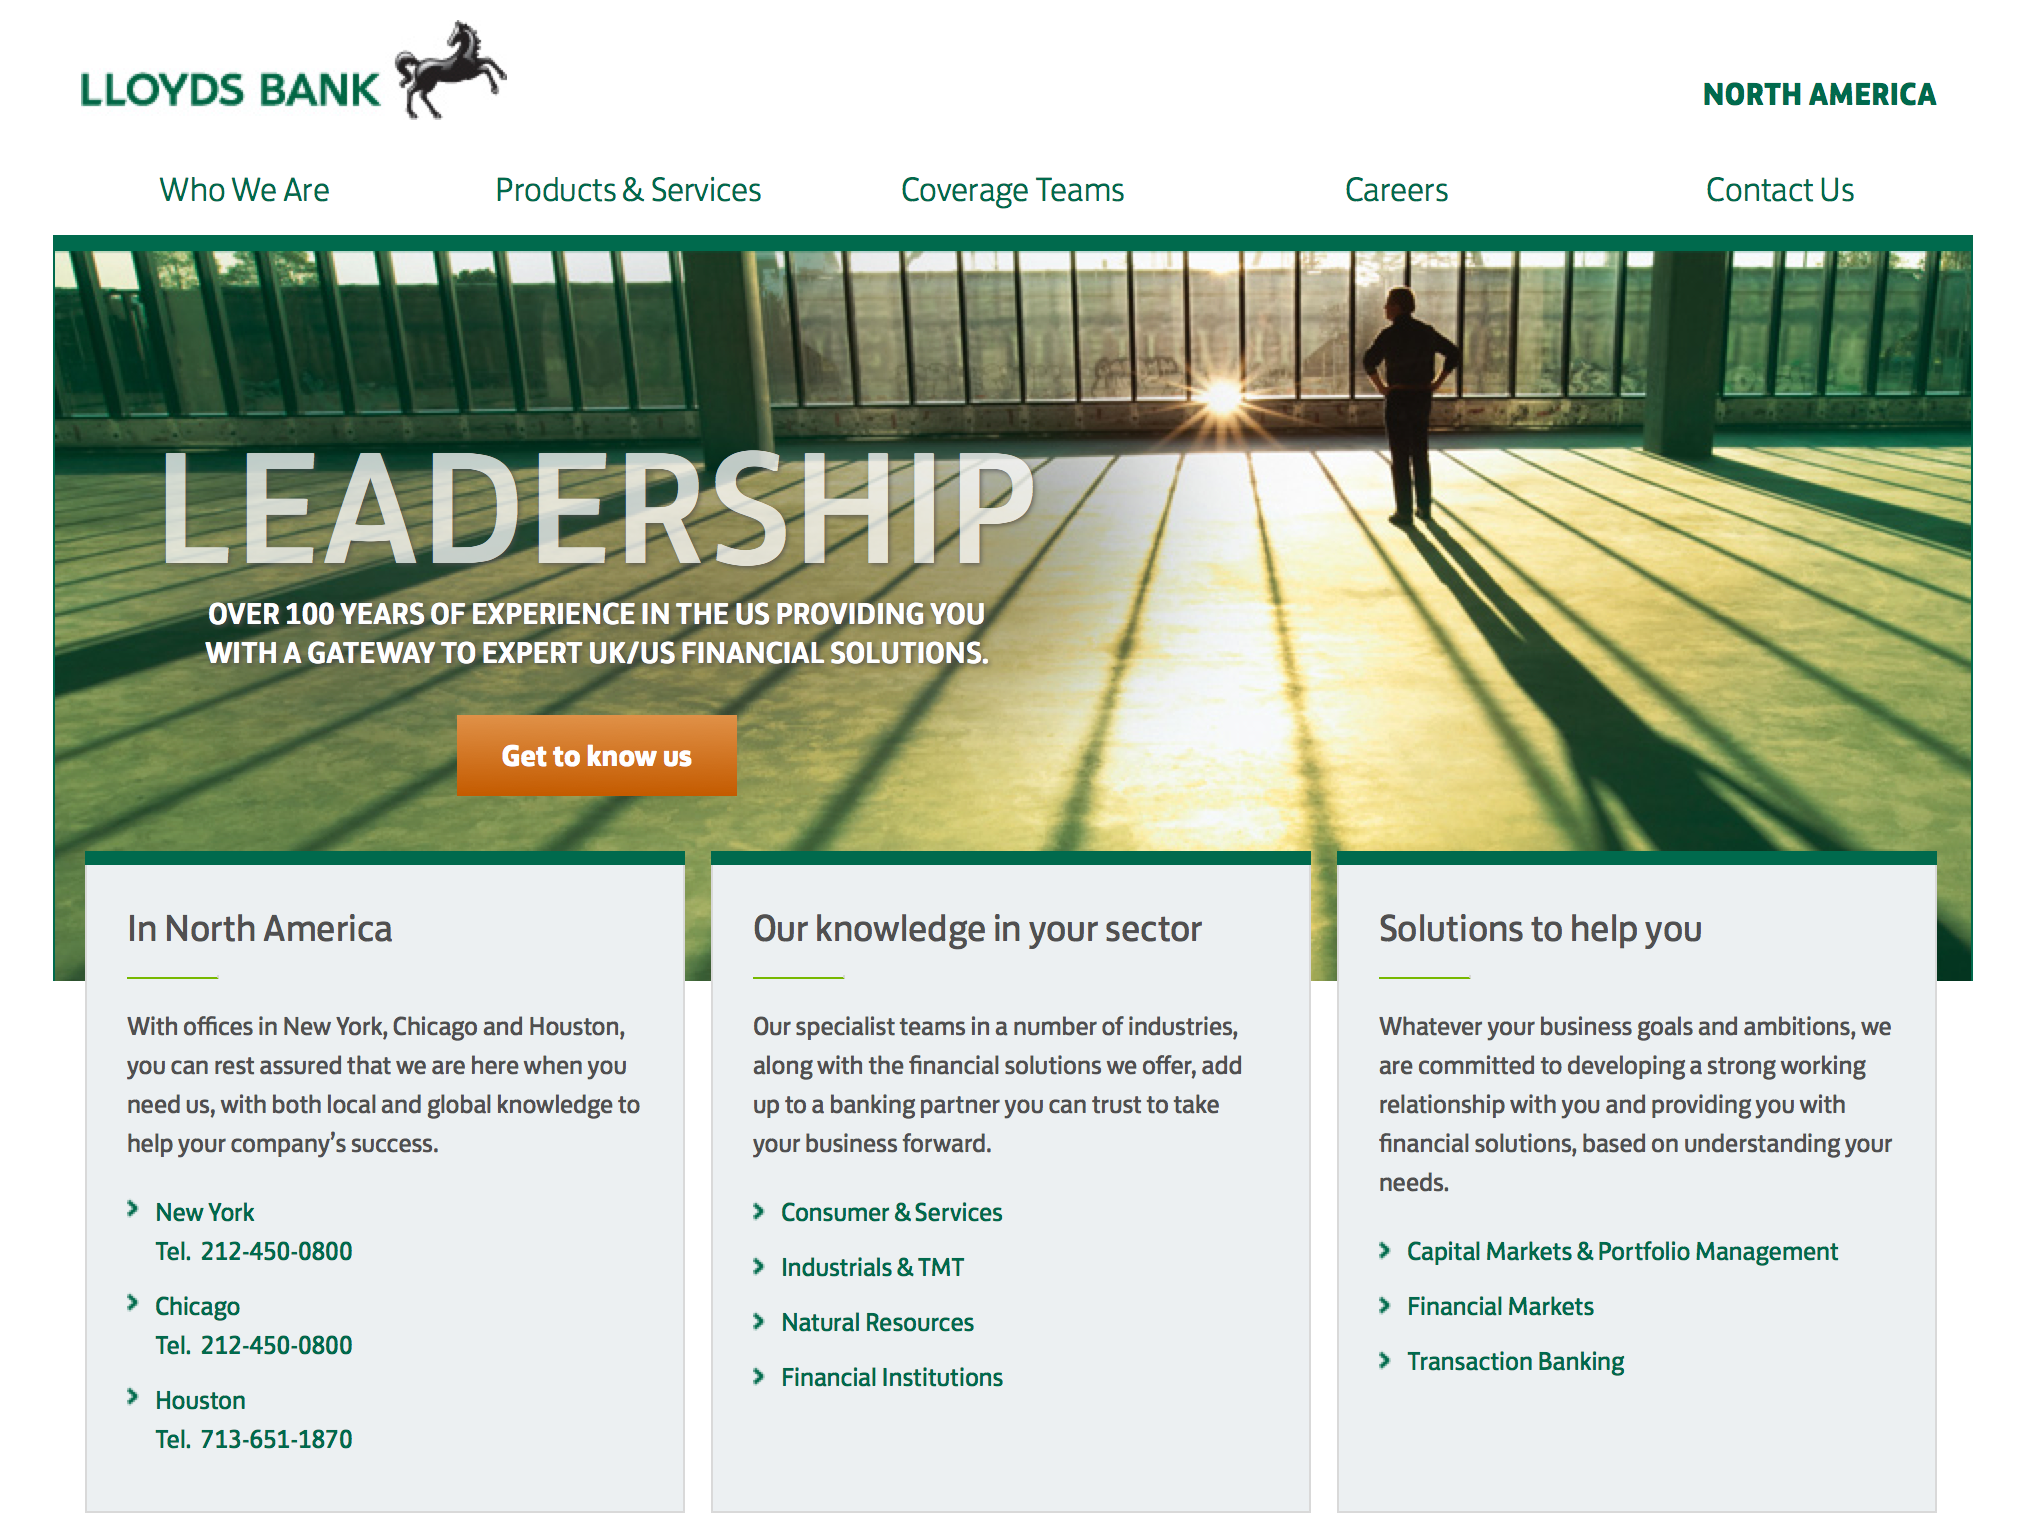 lloyds bank website screenshot